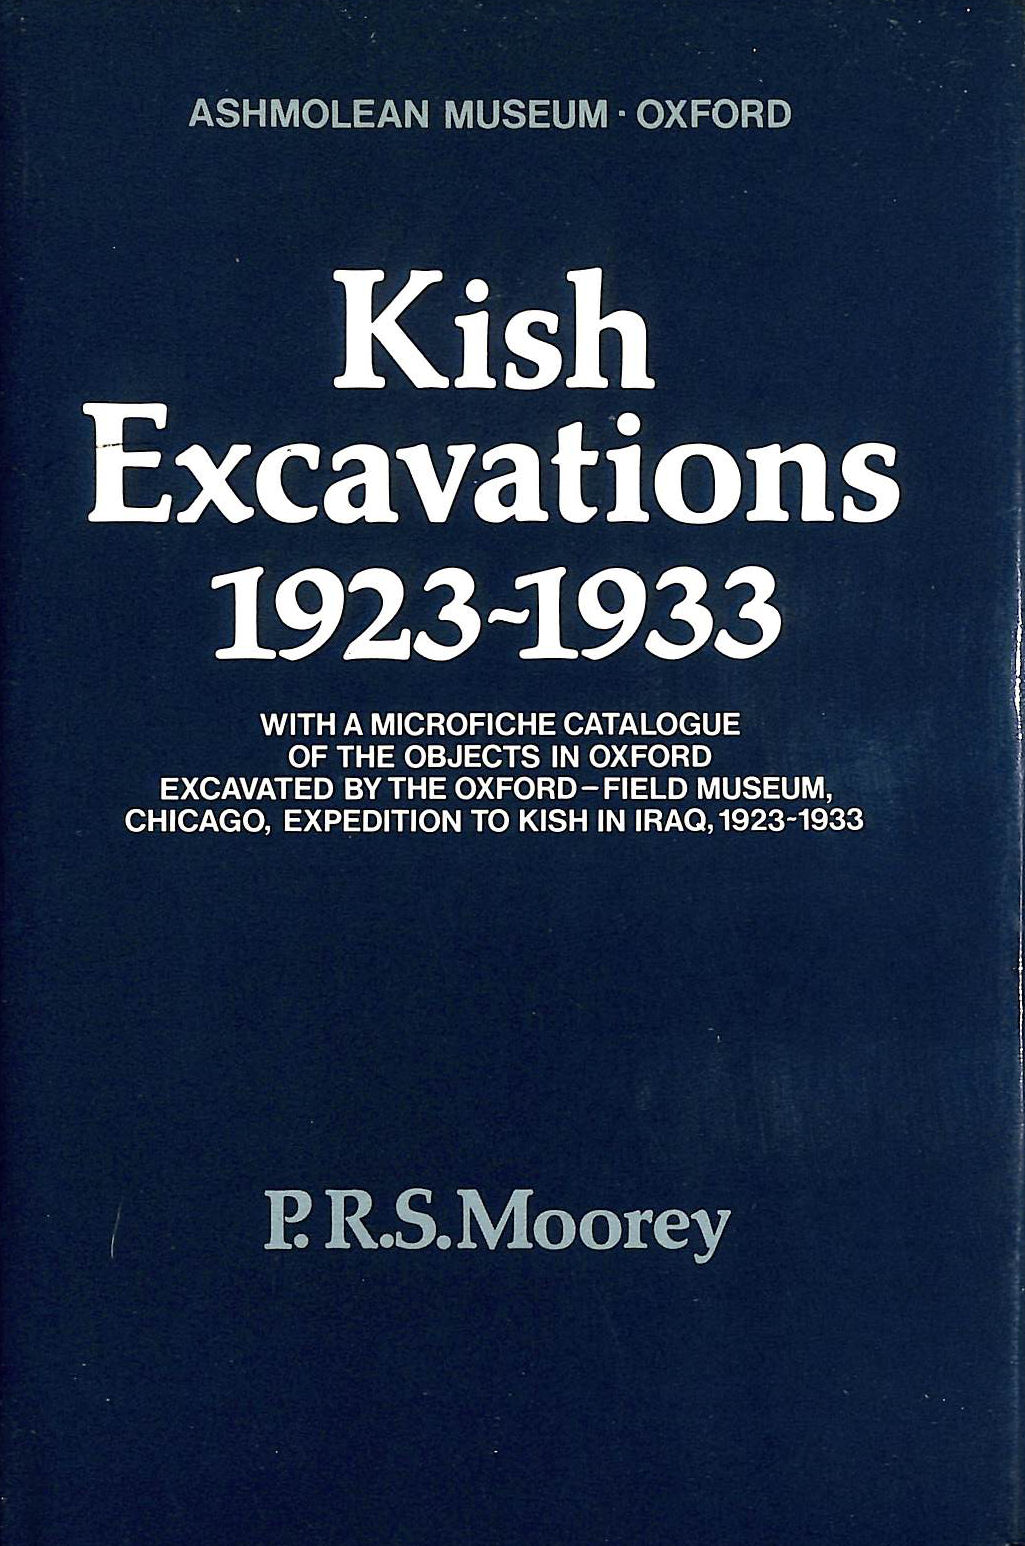 Image for Kish Excavations, 1923-33: With a Microfiche Catalogue of the Objects in Oxford Excavated by the Oxford Field Museum, Chicago Expedition to Kish in Iraq, 1923-33